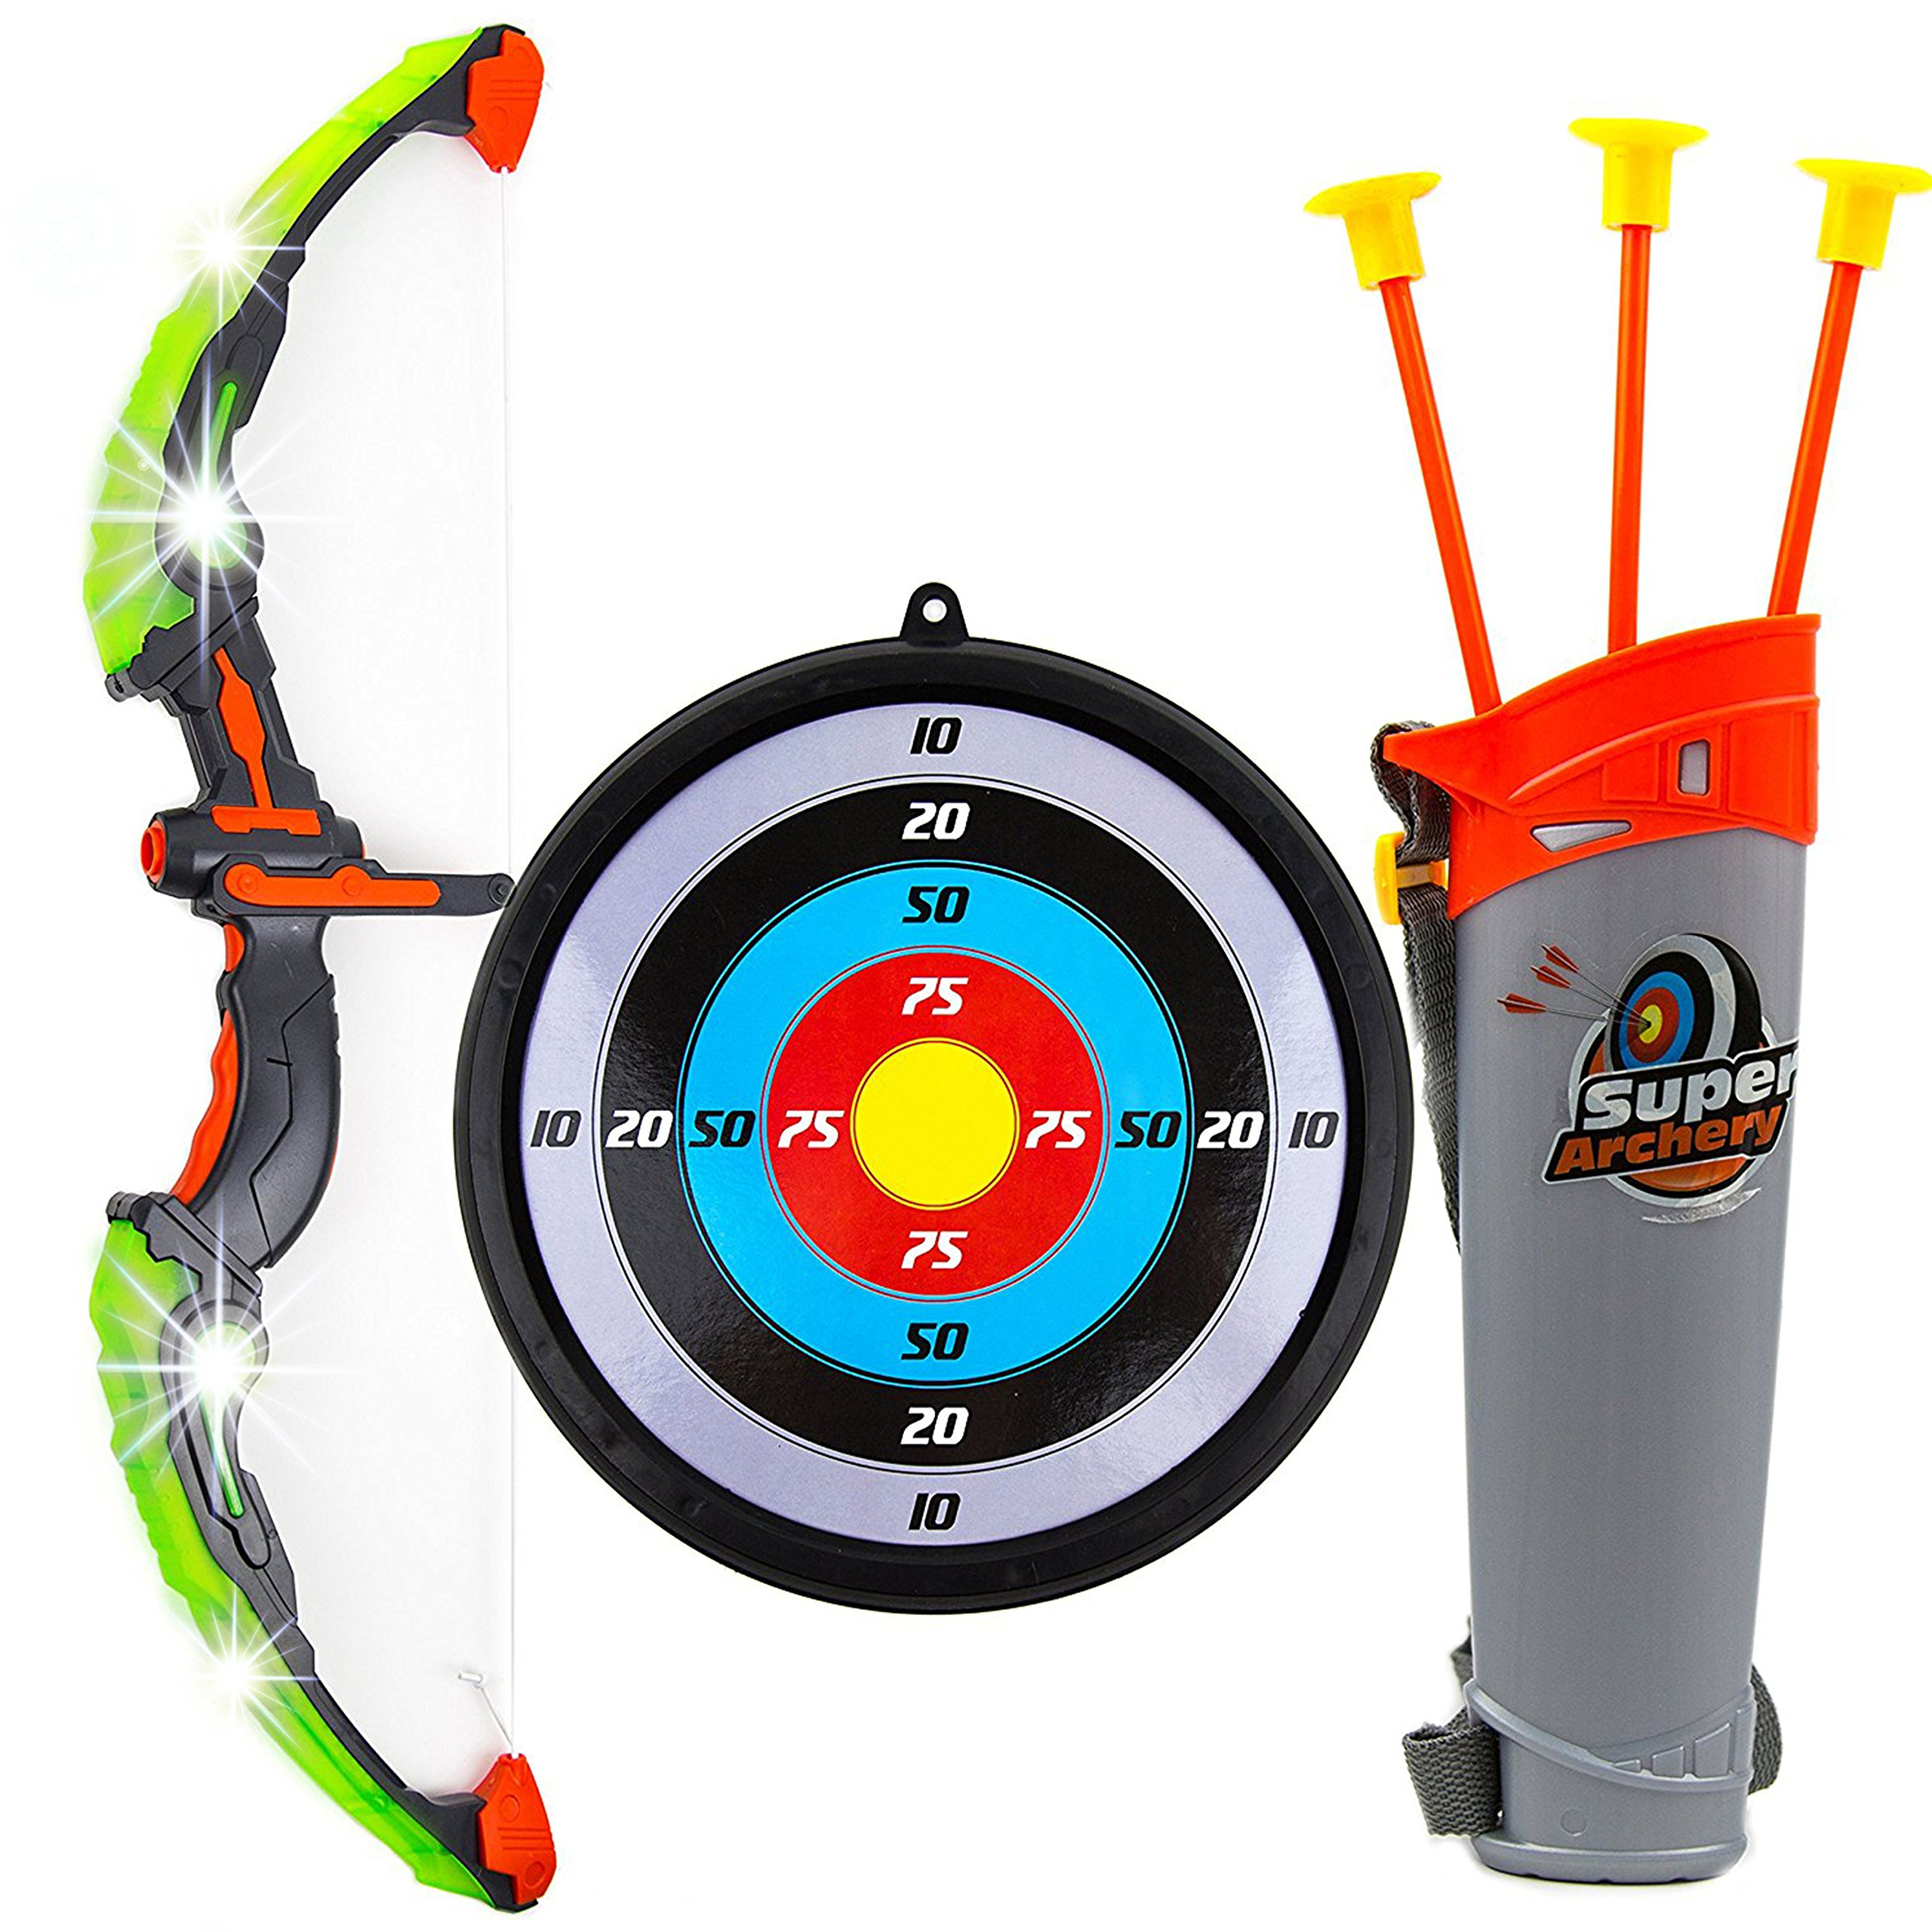 Toysery Kids Toy Bow & Arrow Archery Set Arrow Holder Target - LED Light Up Function - Hunting Series Toy Boys Girls,